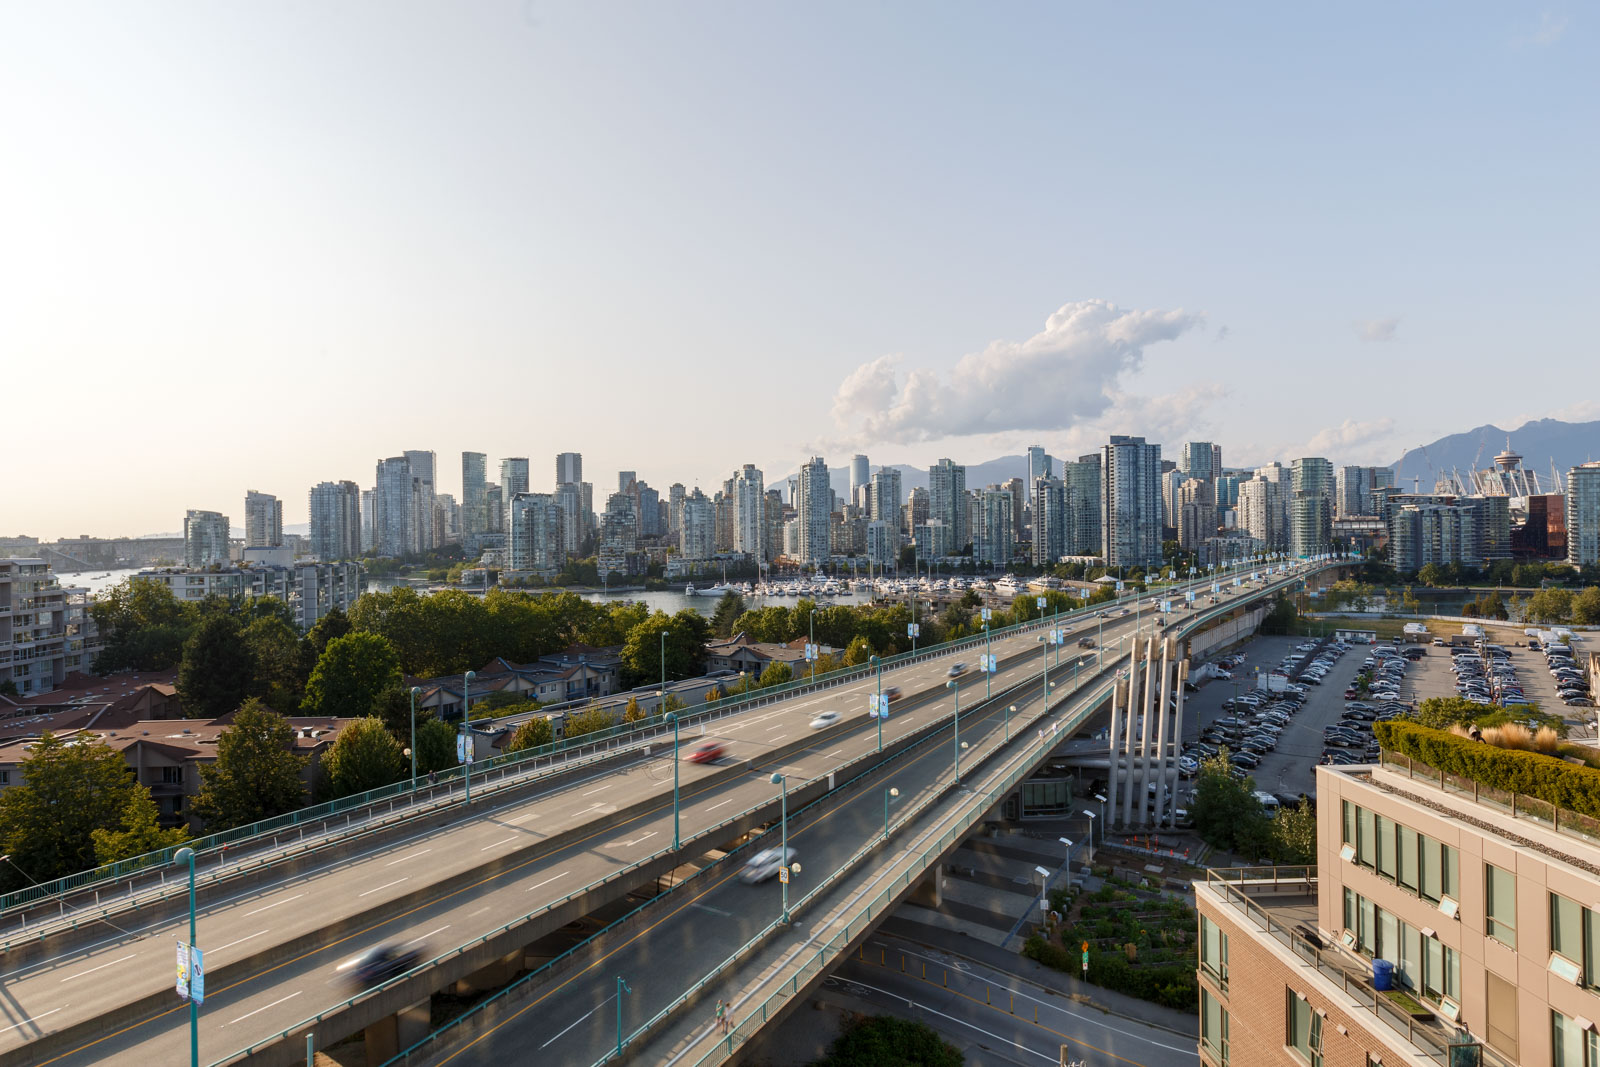 View of the highway from high rise Vancouver condo.